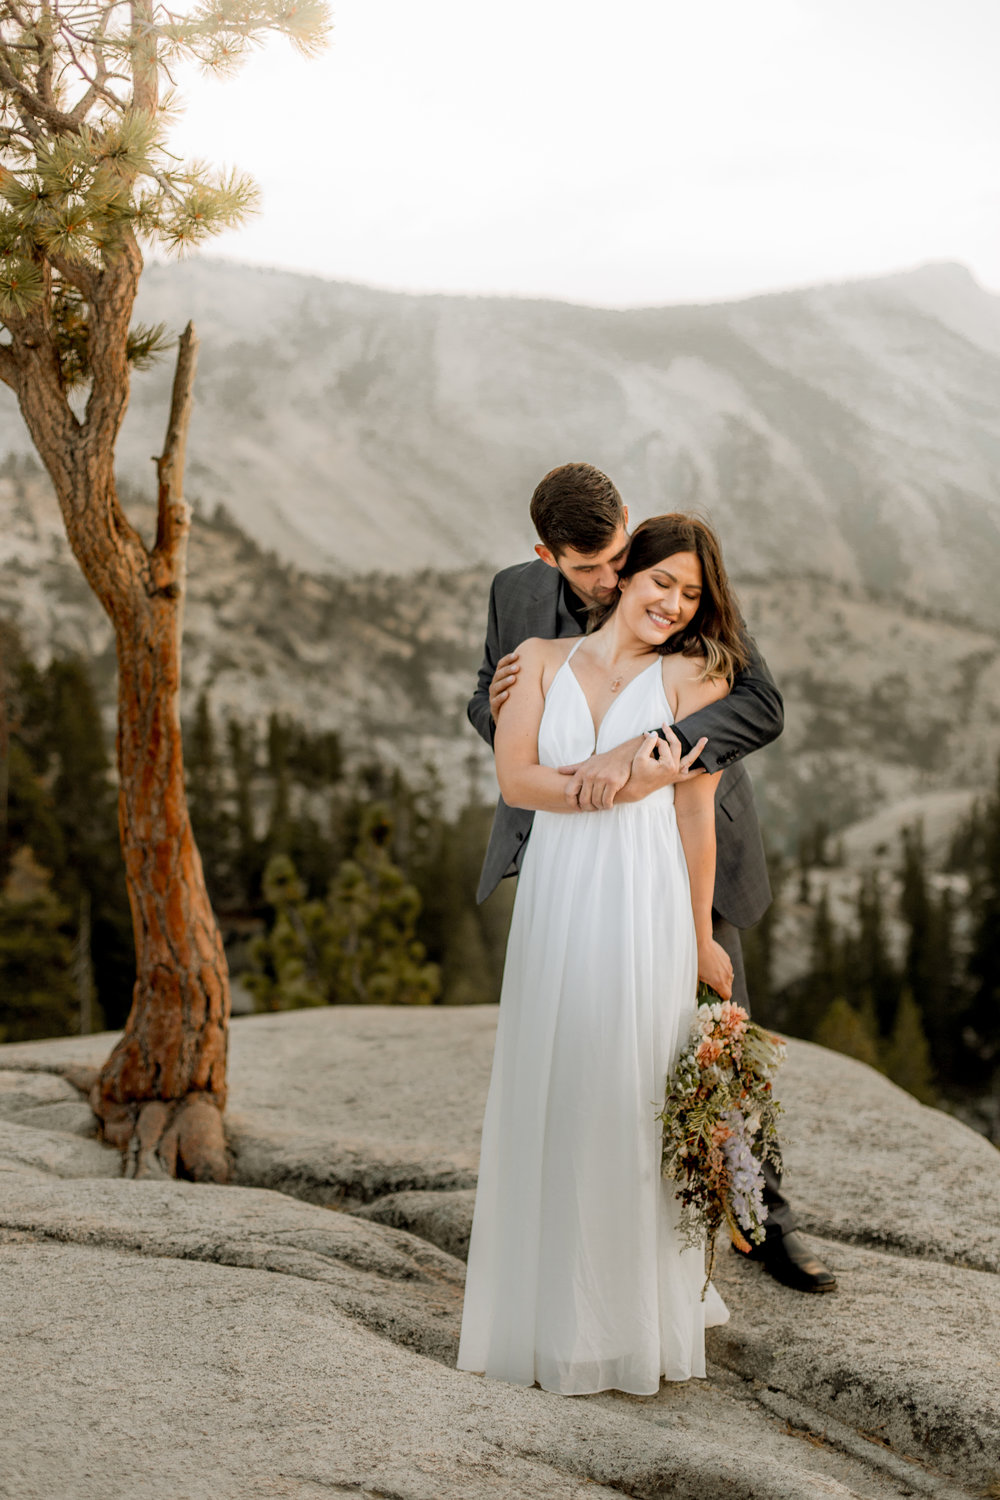 nicole-daacke-photography-yosemite-national-park-fall-elopement-adventurous-free-spirit-boho-bohemian-elopement-olmsted-point-yosemite-california-elope-adventure-elopement-photographer-38.jpg